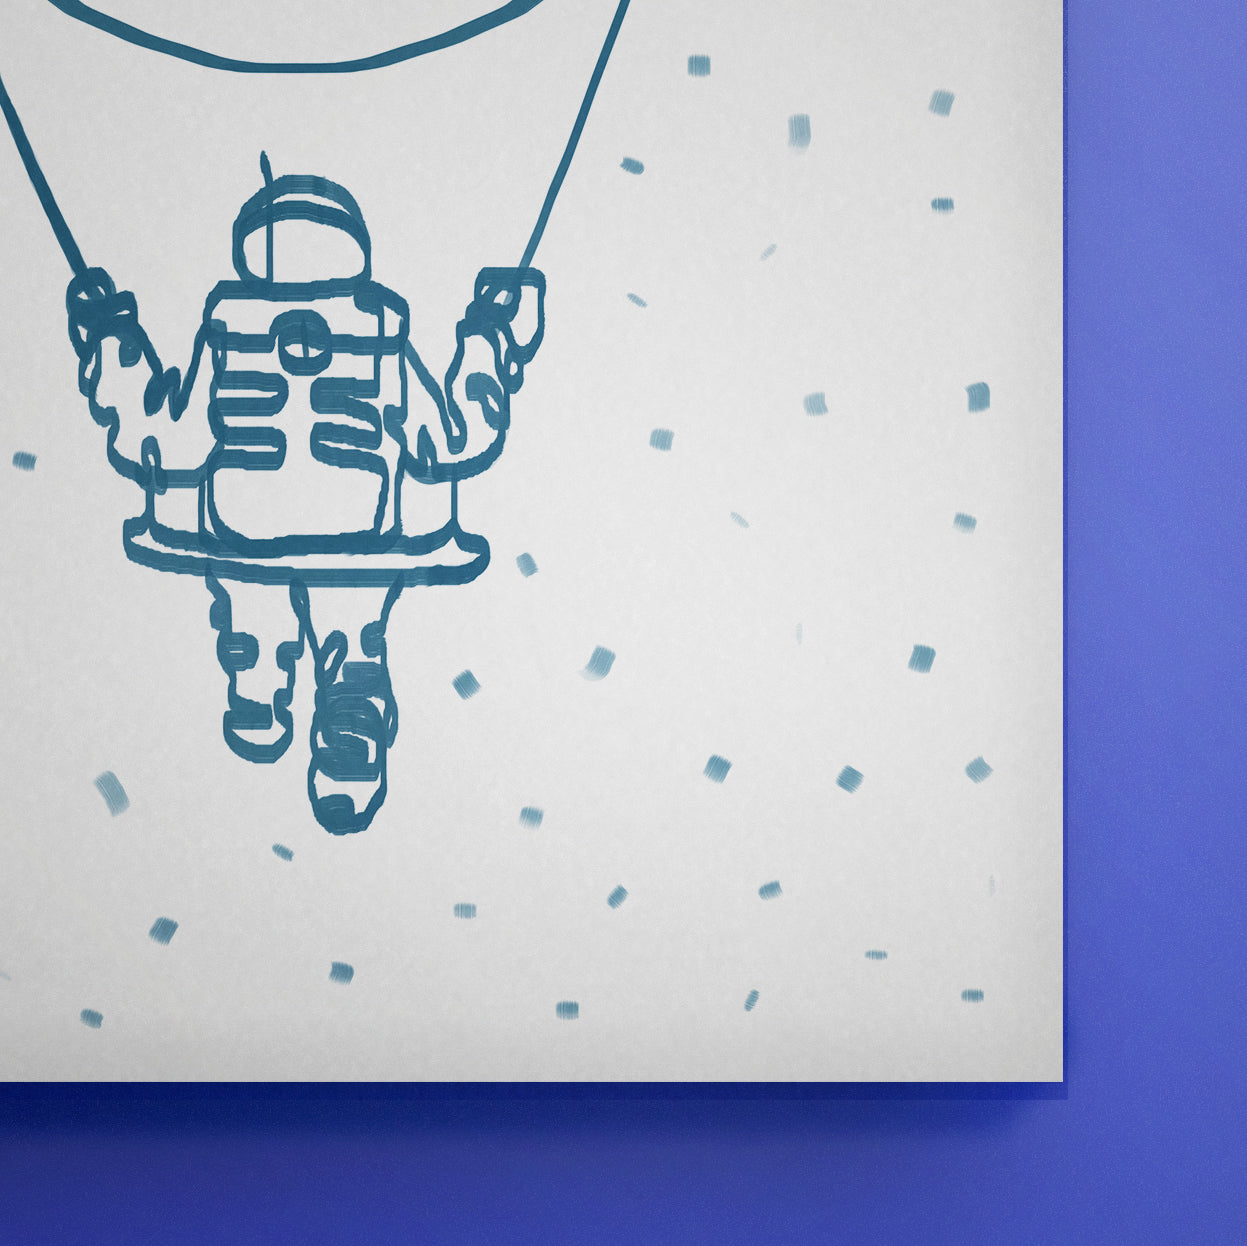 Moon Swinging Astronaut Line Art | Print | Poster | Painting | Drawing - EGLOOP